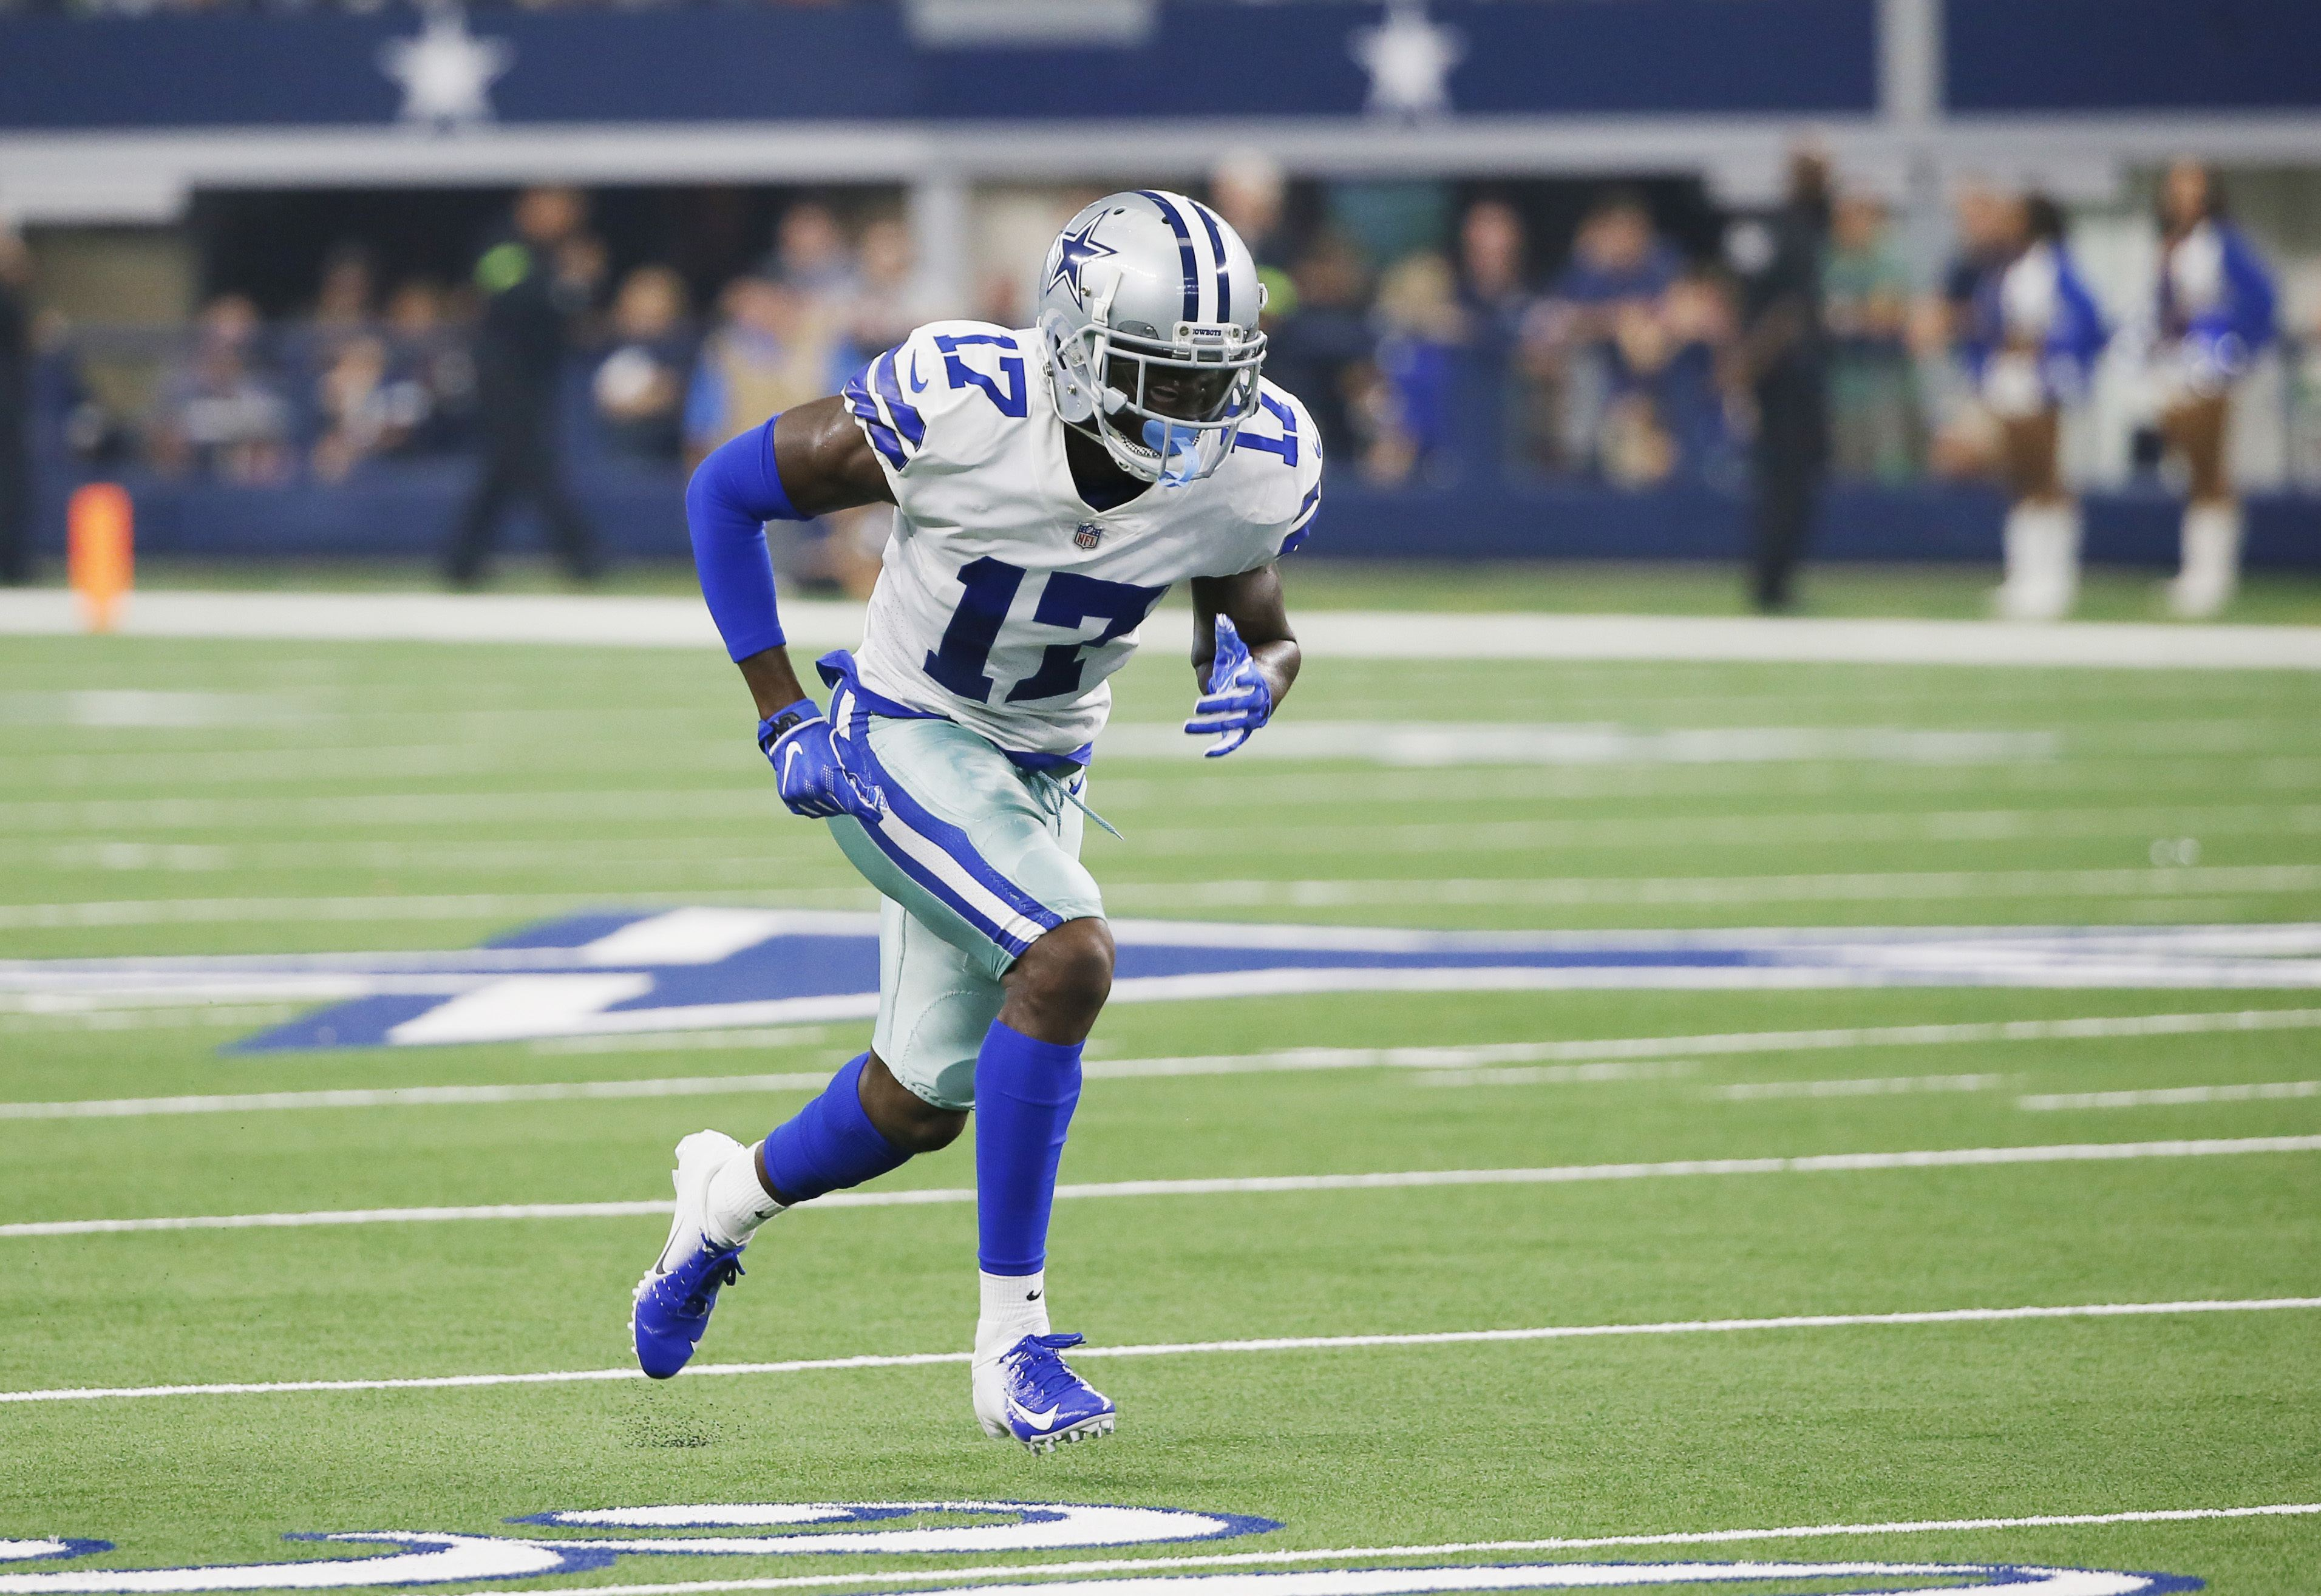 Sean-martin_dallas-cowboys_allen-hurns-frustration-with-cowboys-dysfunctional-offense-is-justified